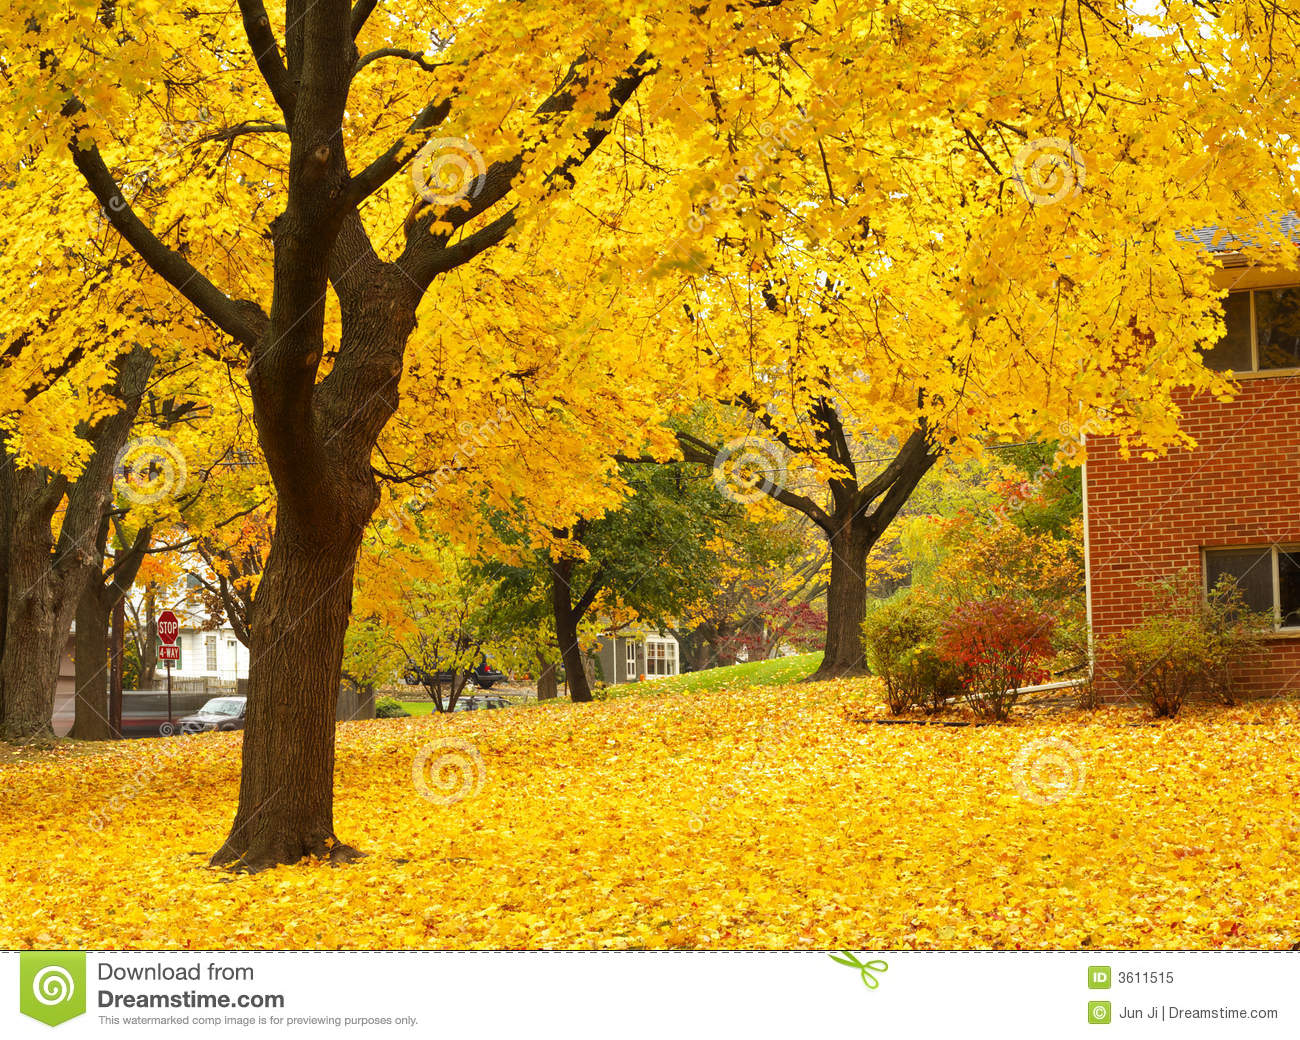 Fall Iphone 6 Plus Wallpaper Yellow Maple Tree Landscapes Stock Image Image 3611515